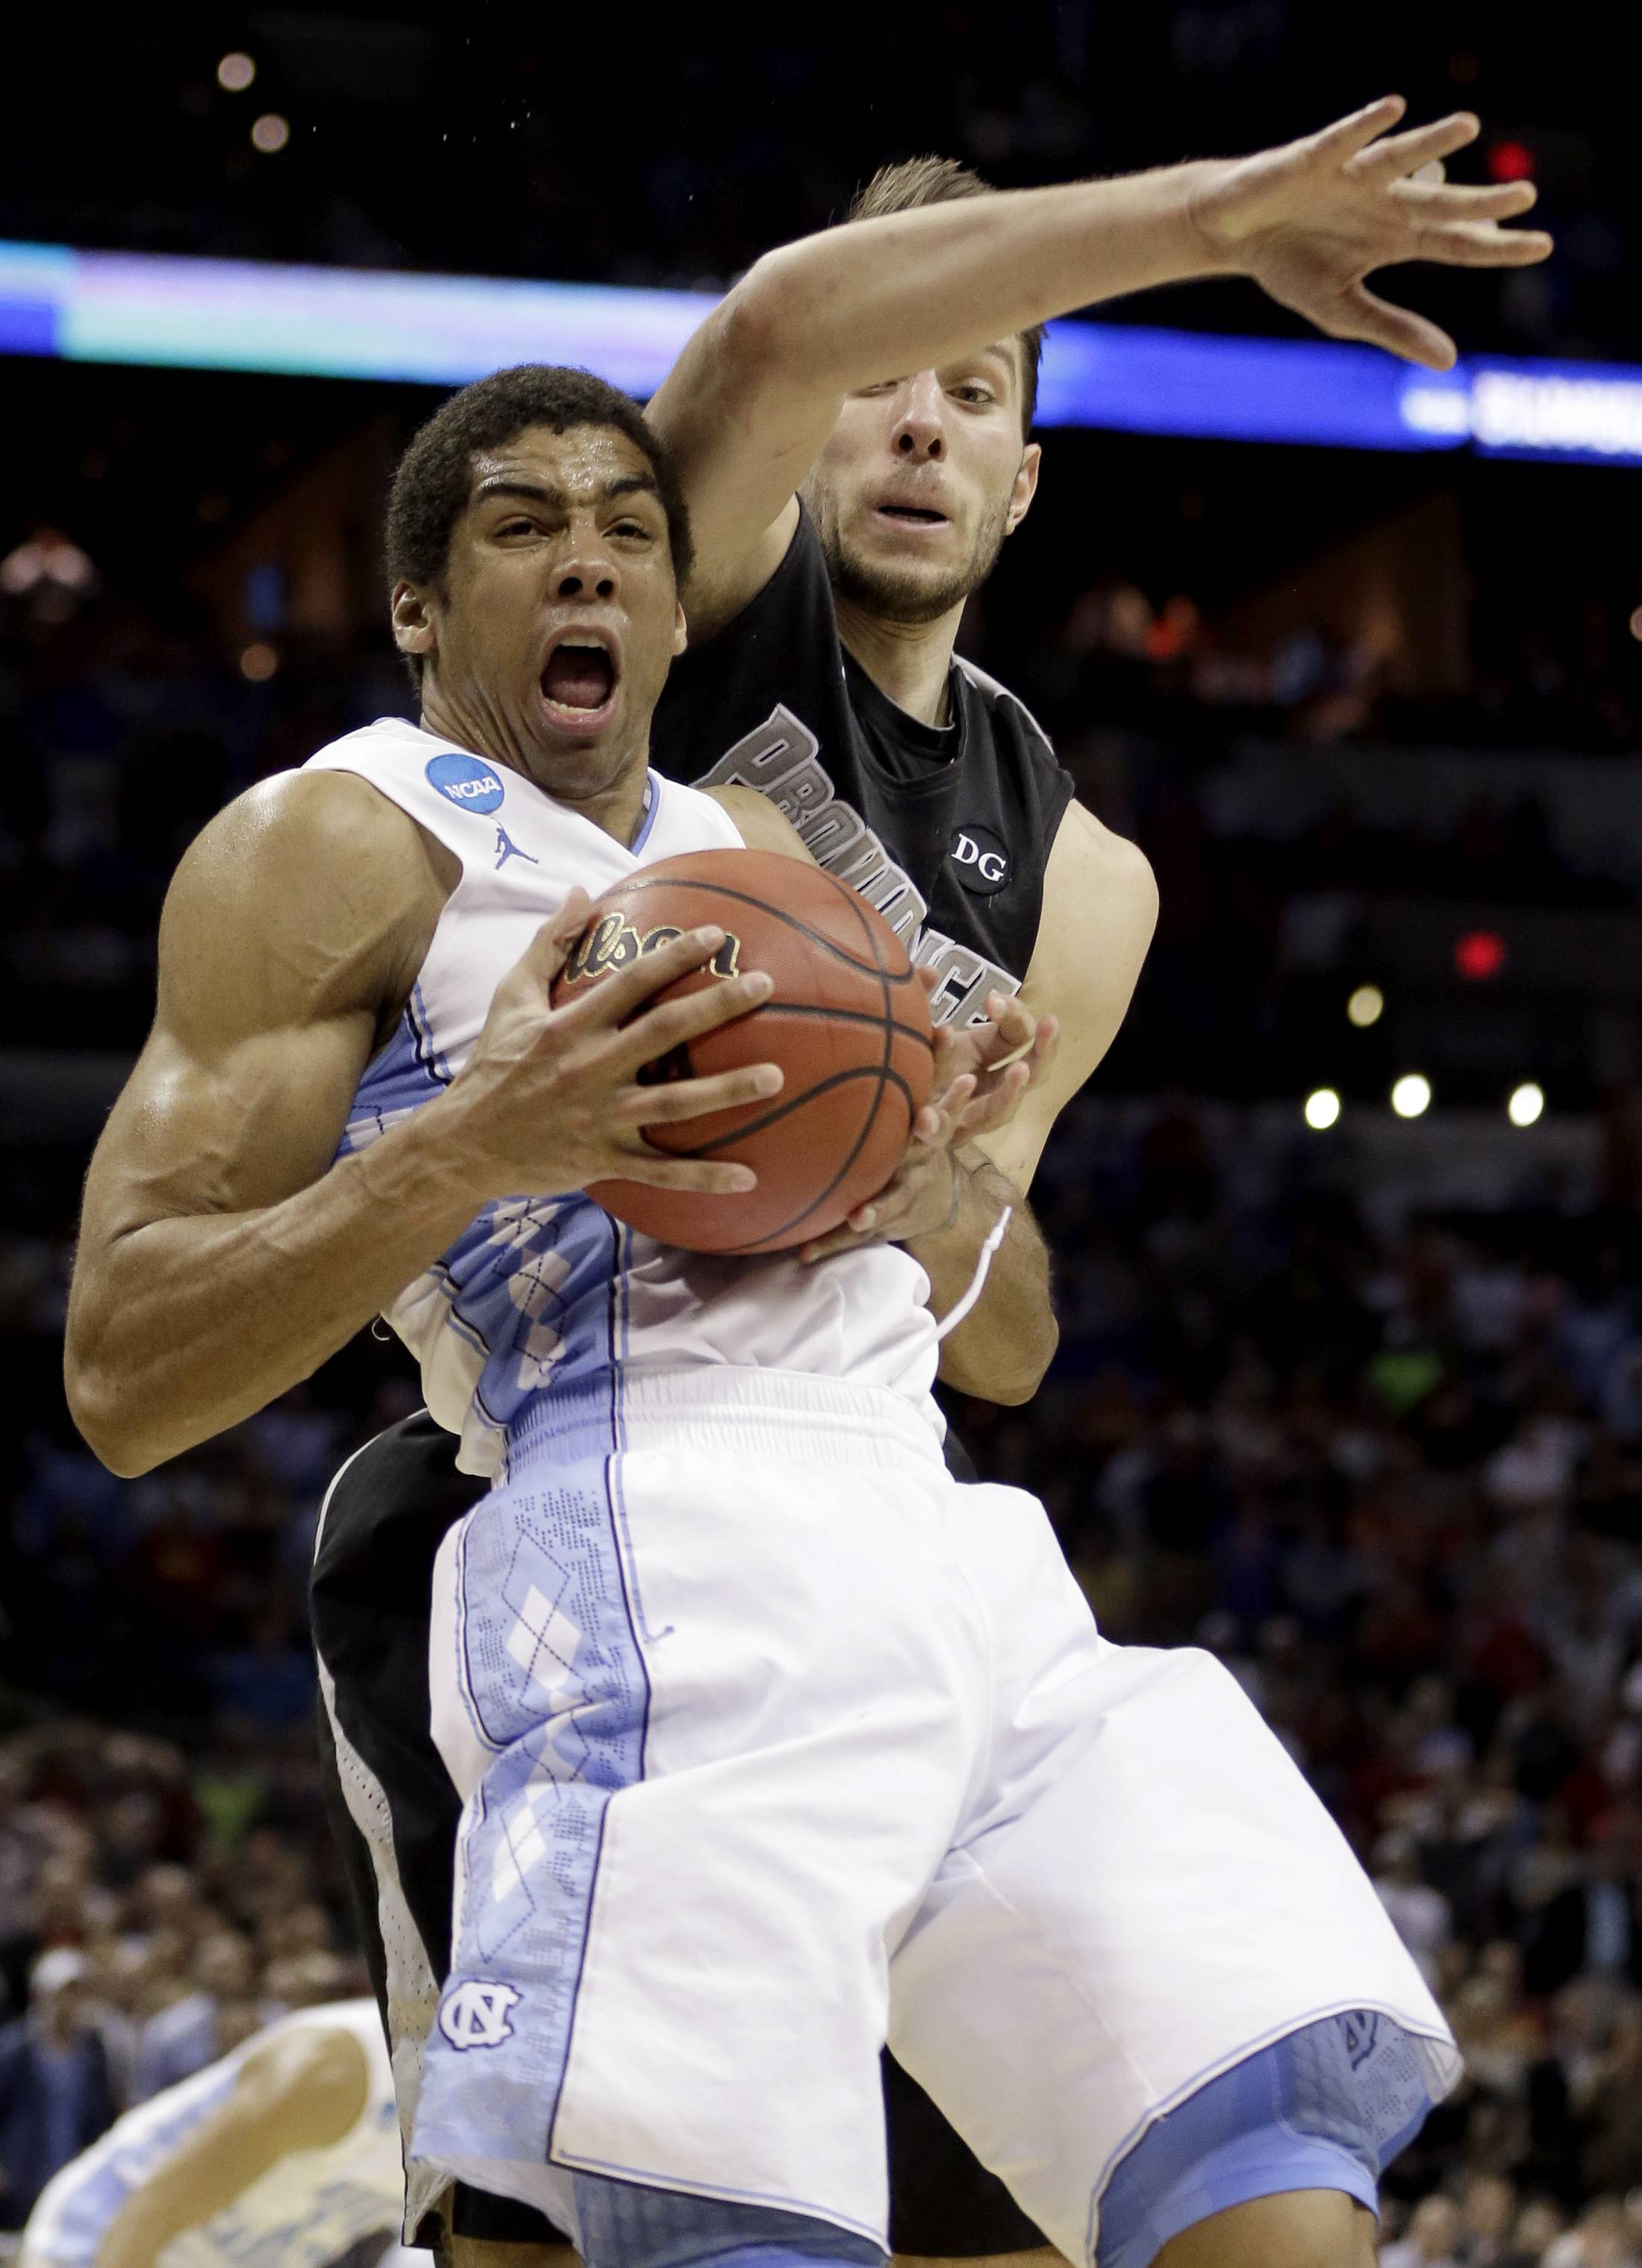 North Carolina's James Michael McAdoo, left, is fouled by Providence's Carson Desrosiers during the closing seconds an NCAA tournament game Friday in San Antonio. McAdoo's free throws lifted North Carolina to a 79-77 win.